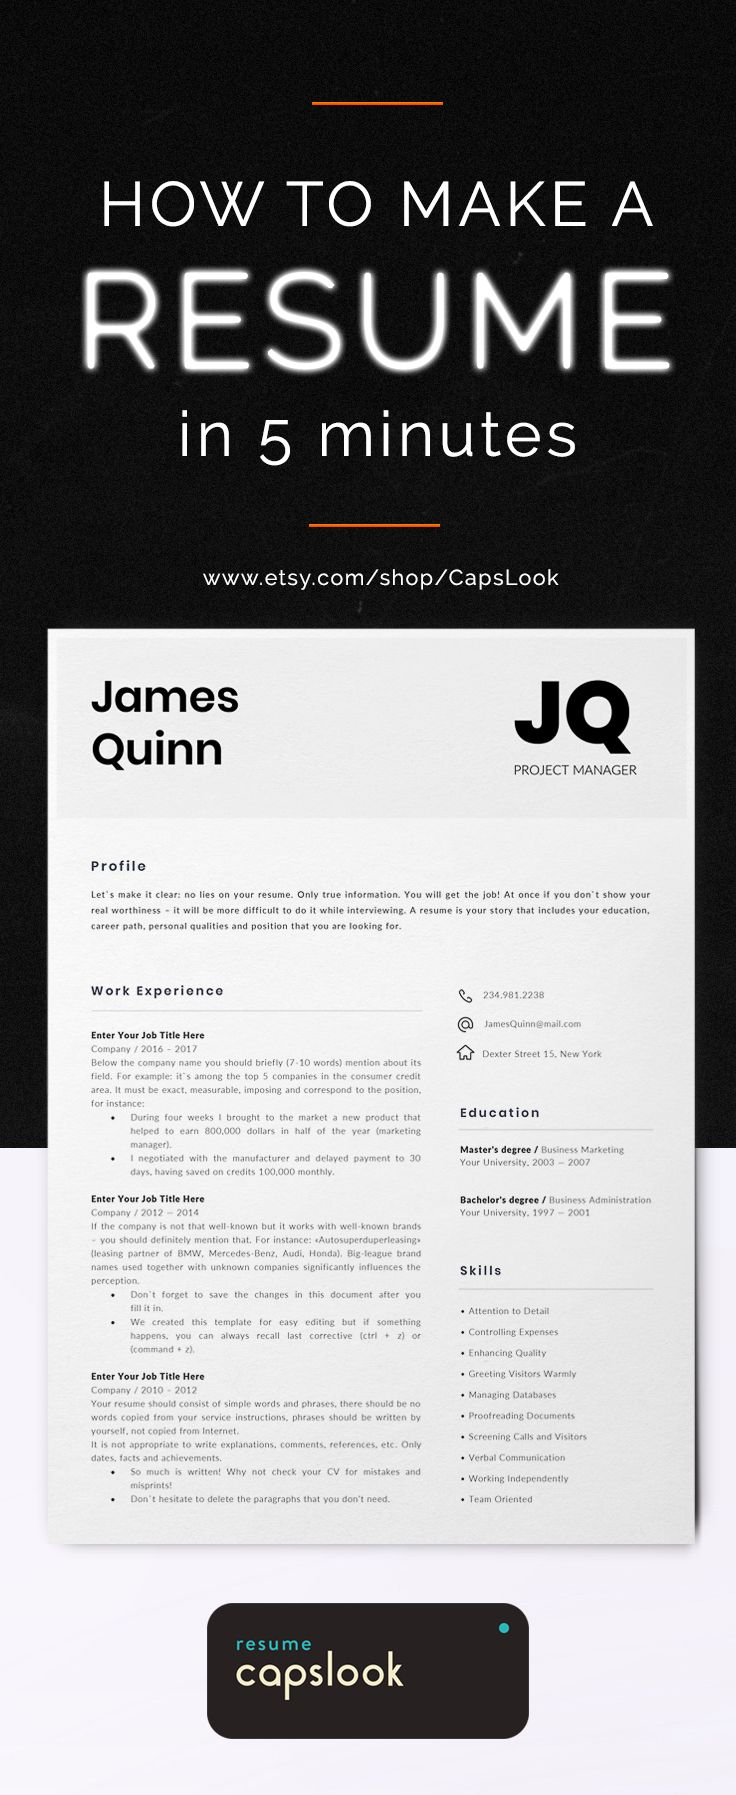 information technology resume template  project manager  engineer  marketing resume examples  up